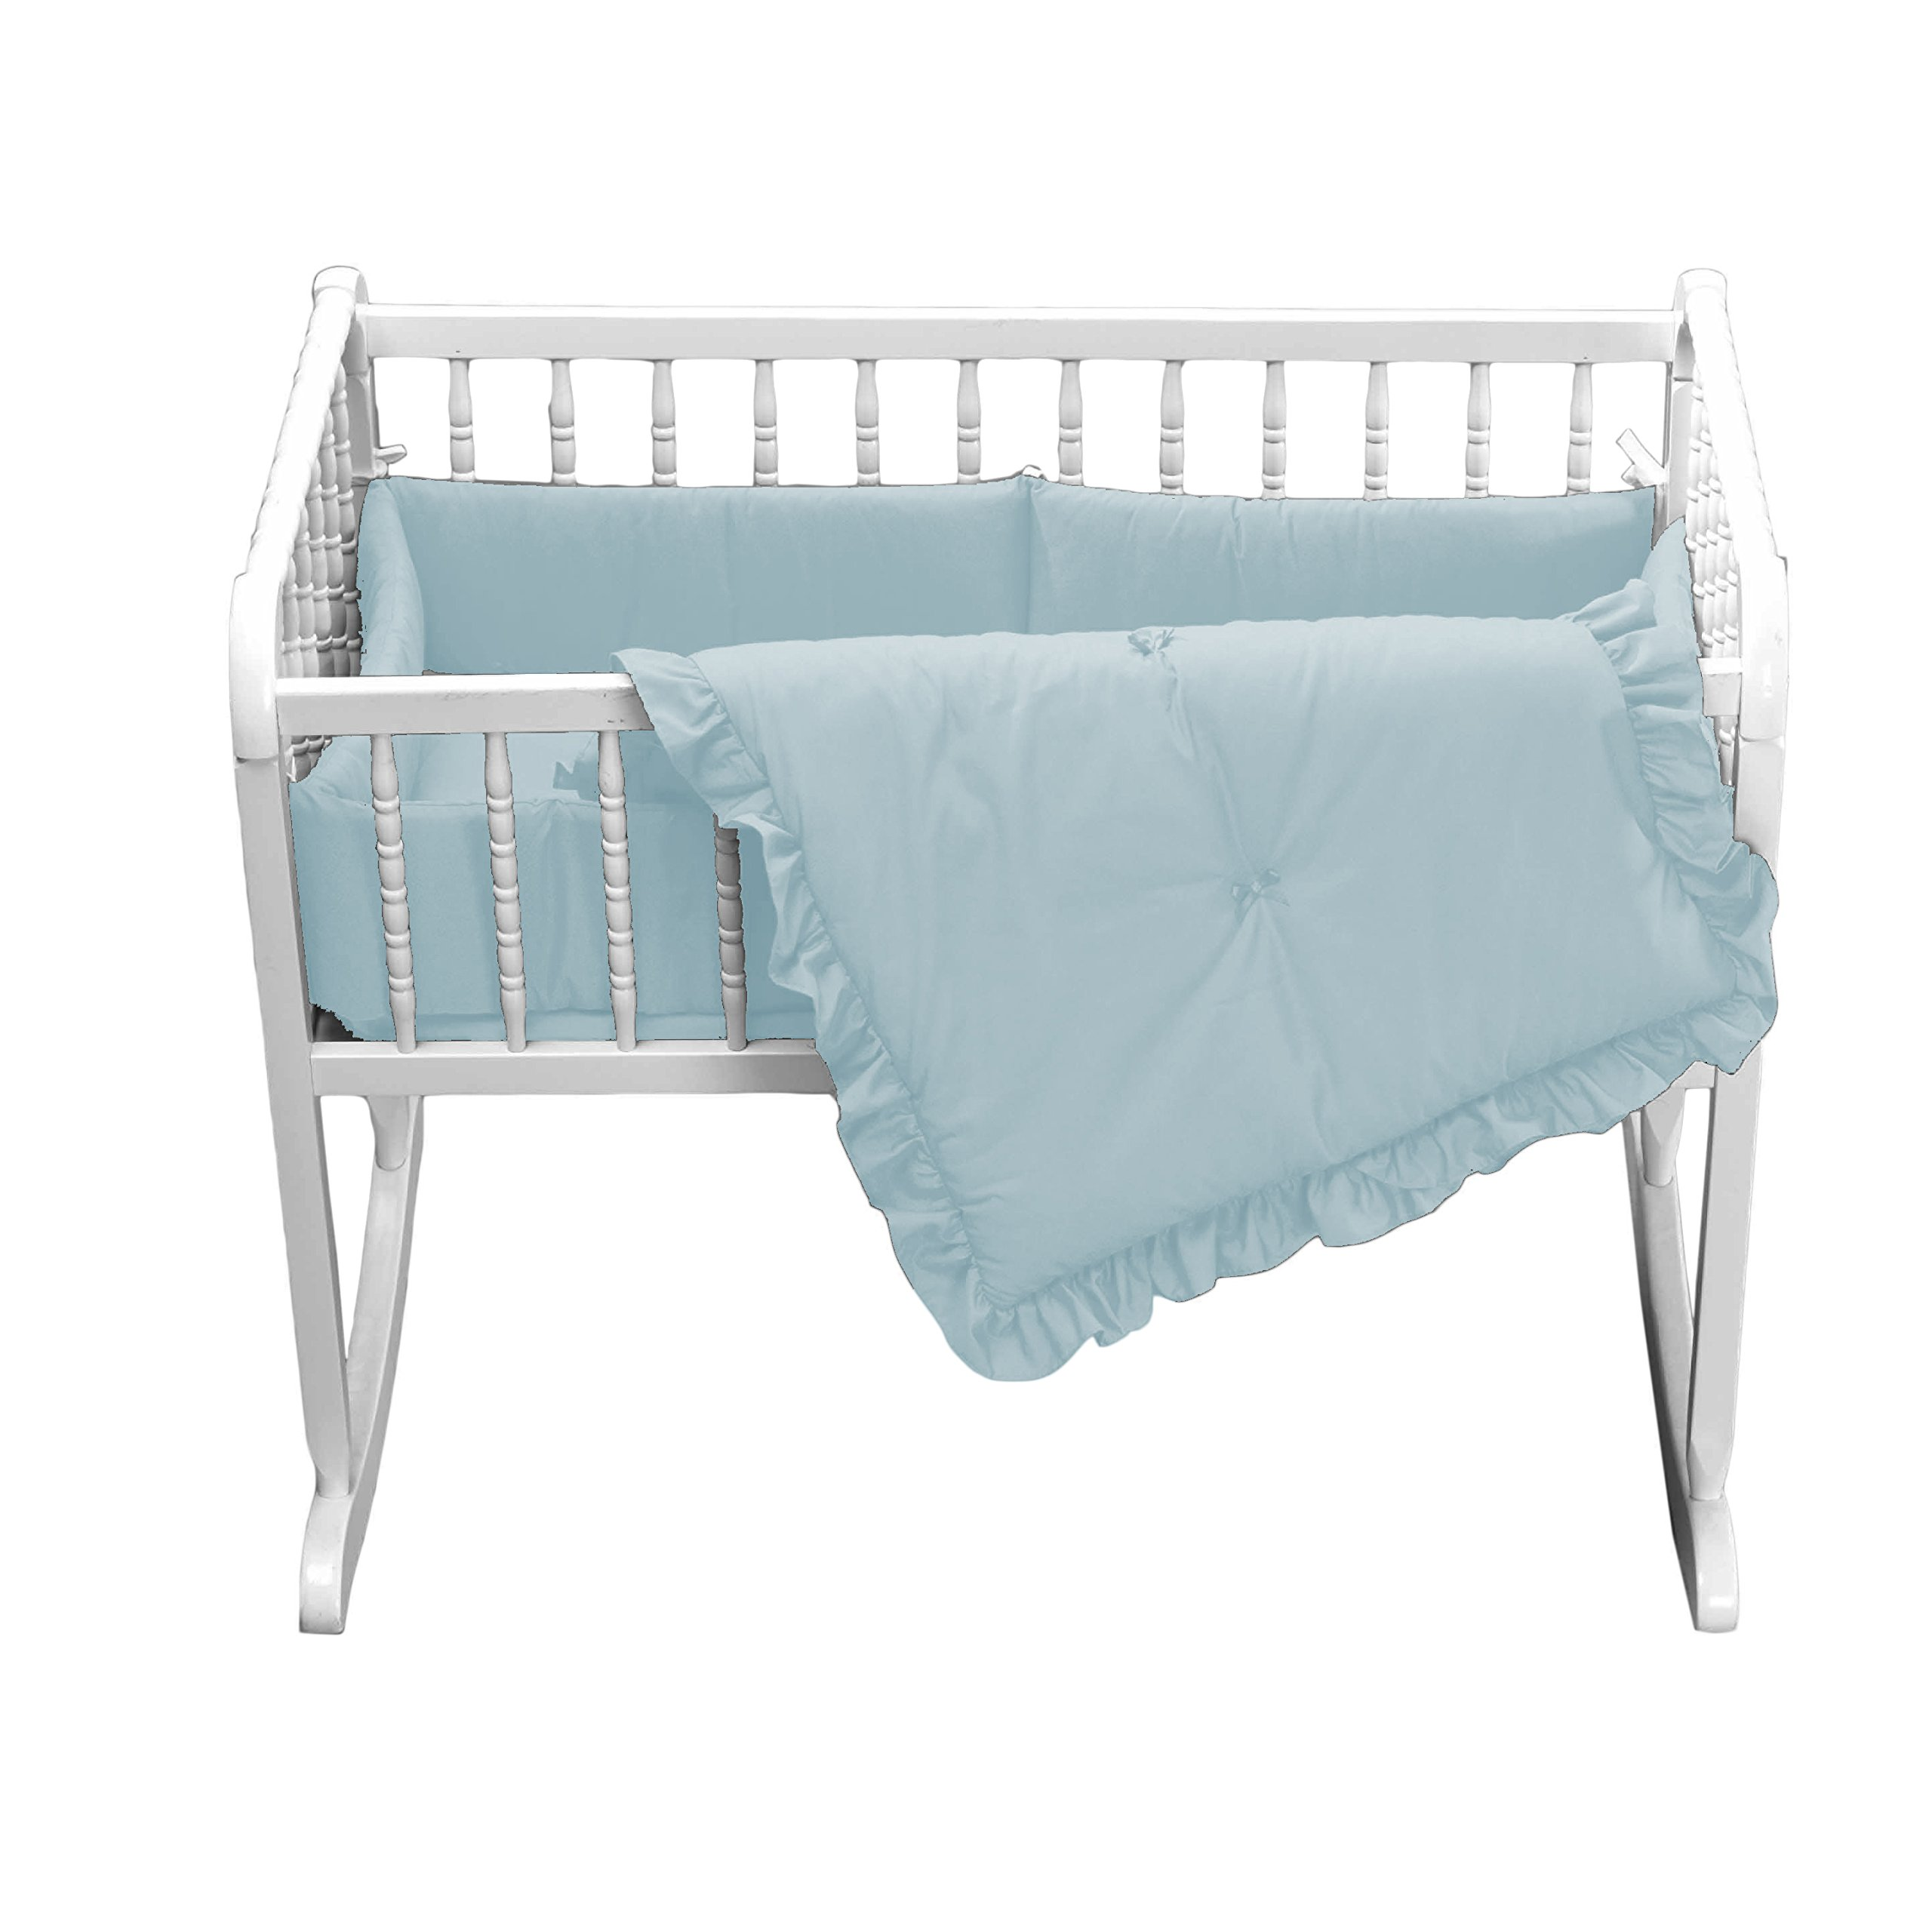 bkb Primary Colors Cradle Bedding, Light Blue, 15'' x 33'' by BabyDoll Bedding